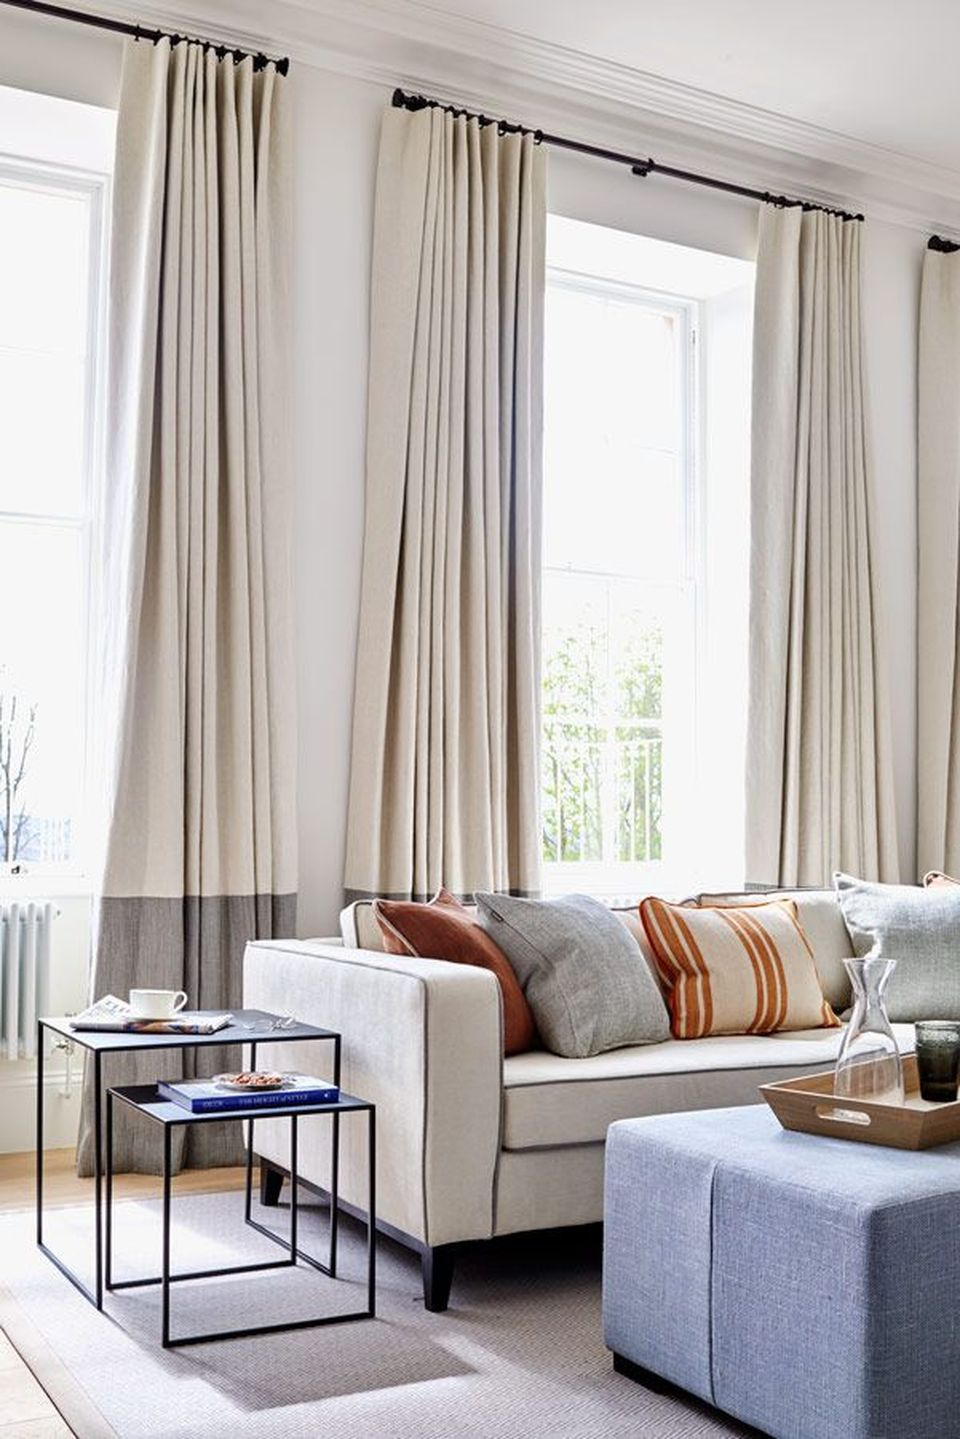 Elegant Tall Curtains Ideas for Your Home Living Room | Marbella ...